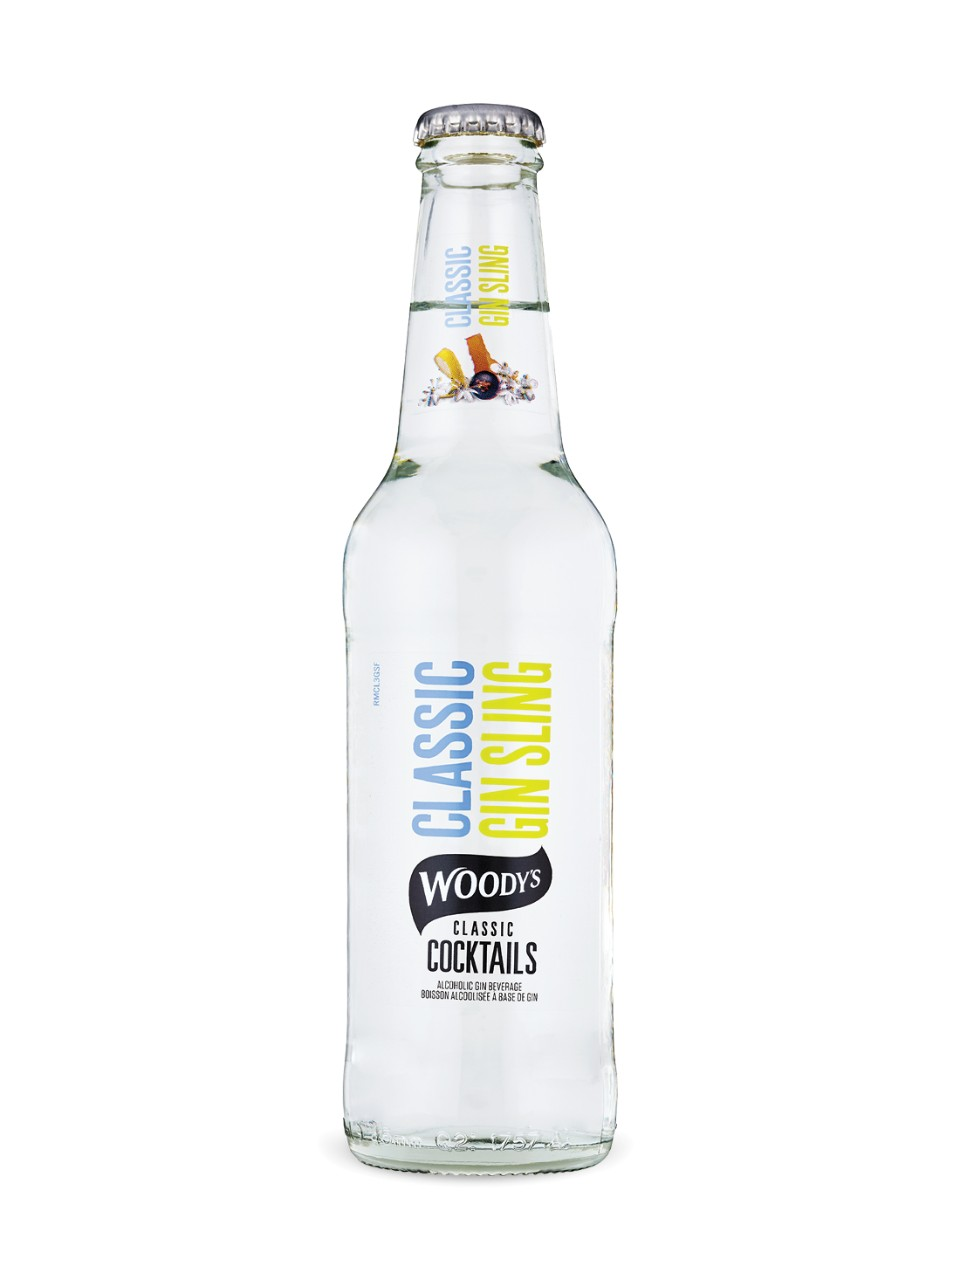 Woody's Gin Sling